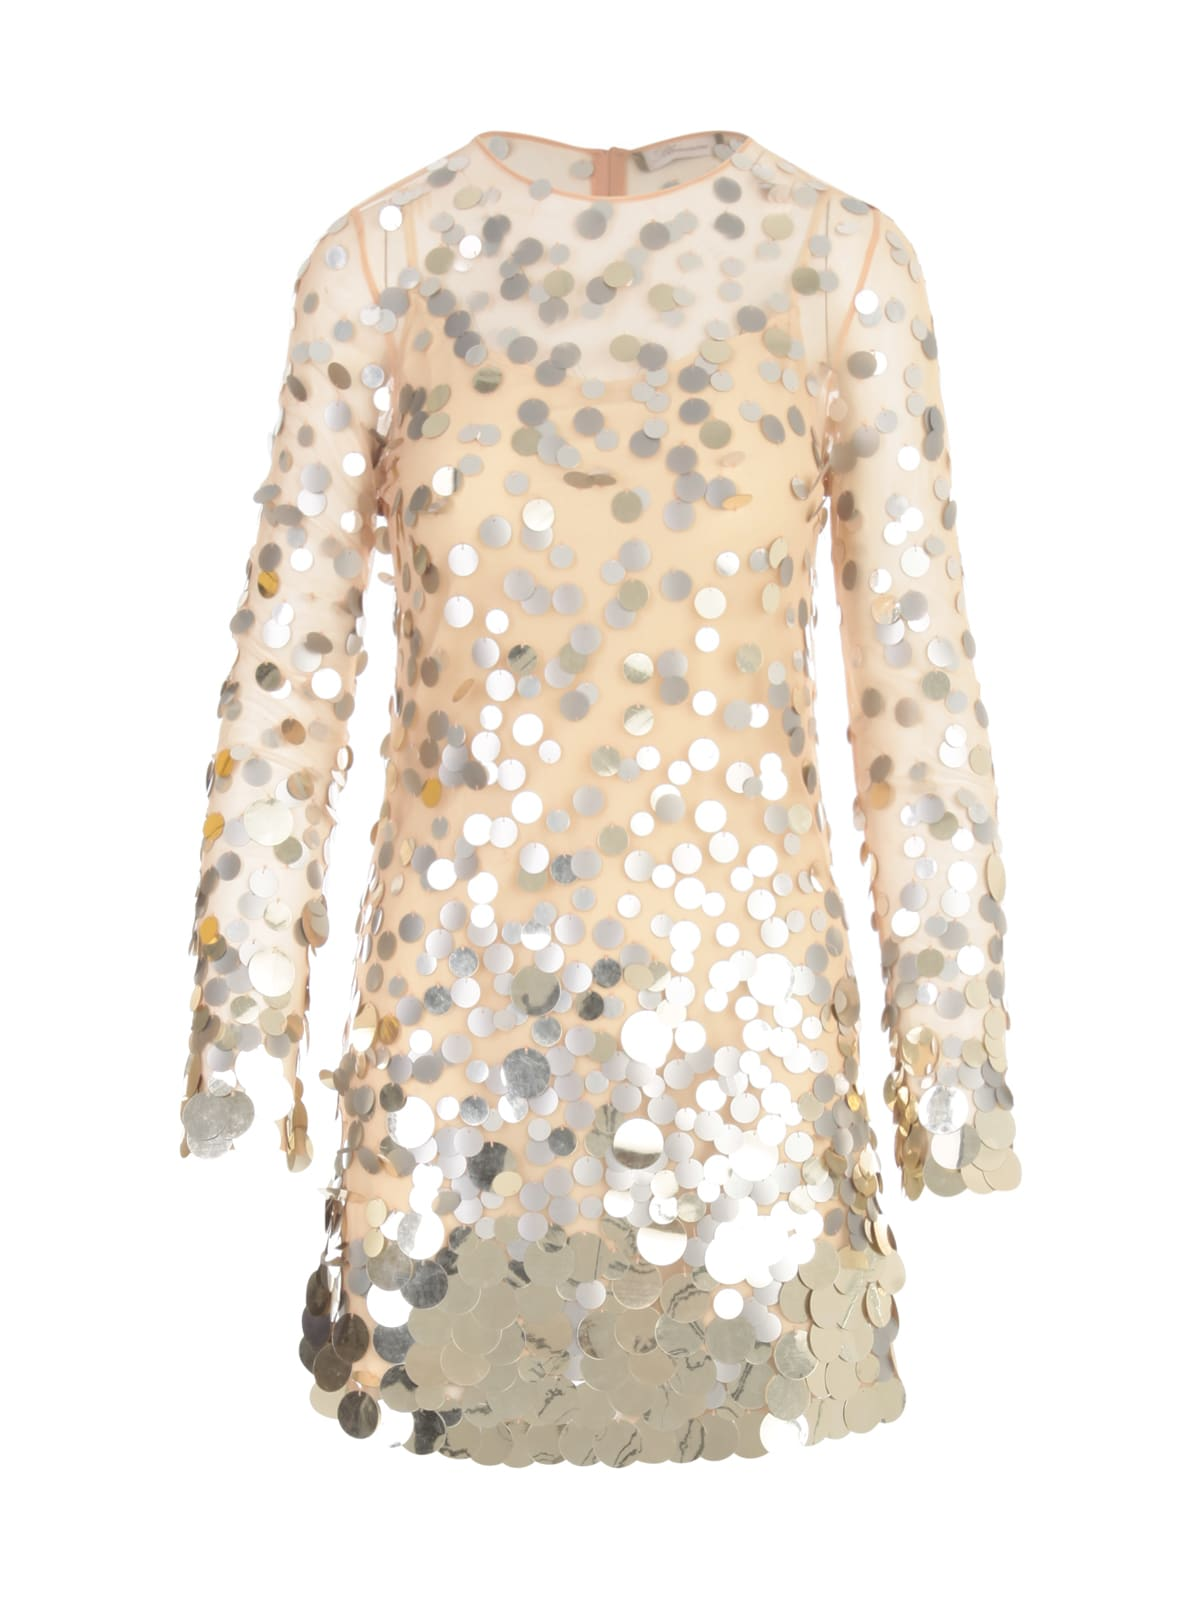 Buy Blumarine Embroidered Paillettes L/s Mini Dress online, shop Blumarine with free shipping